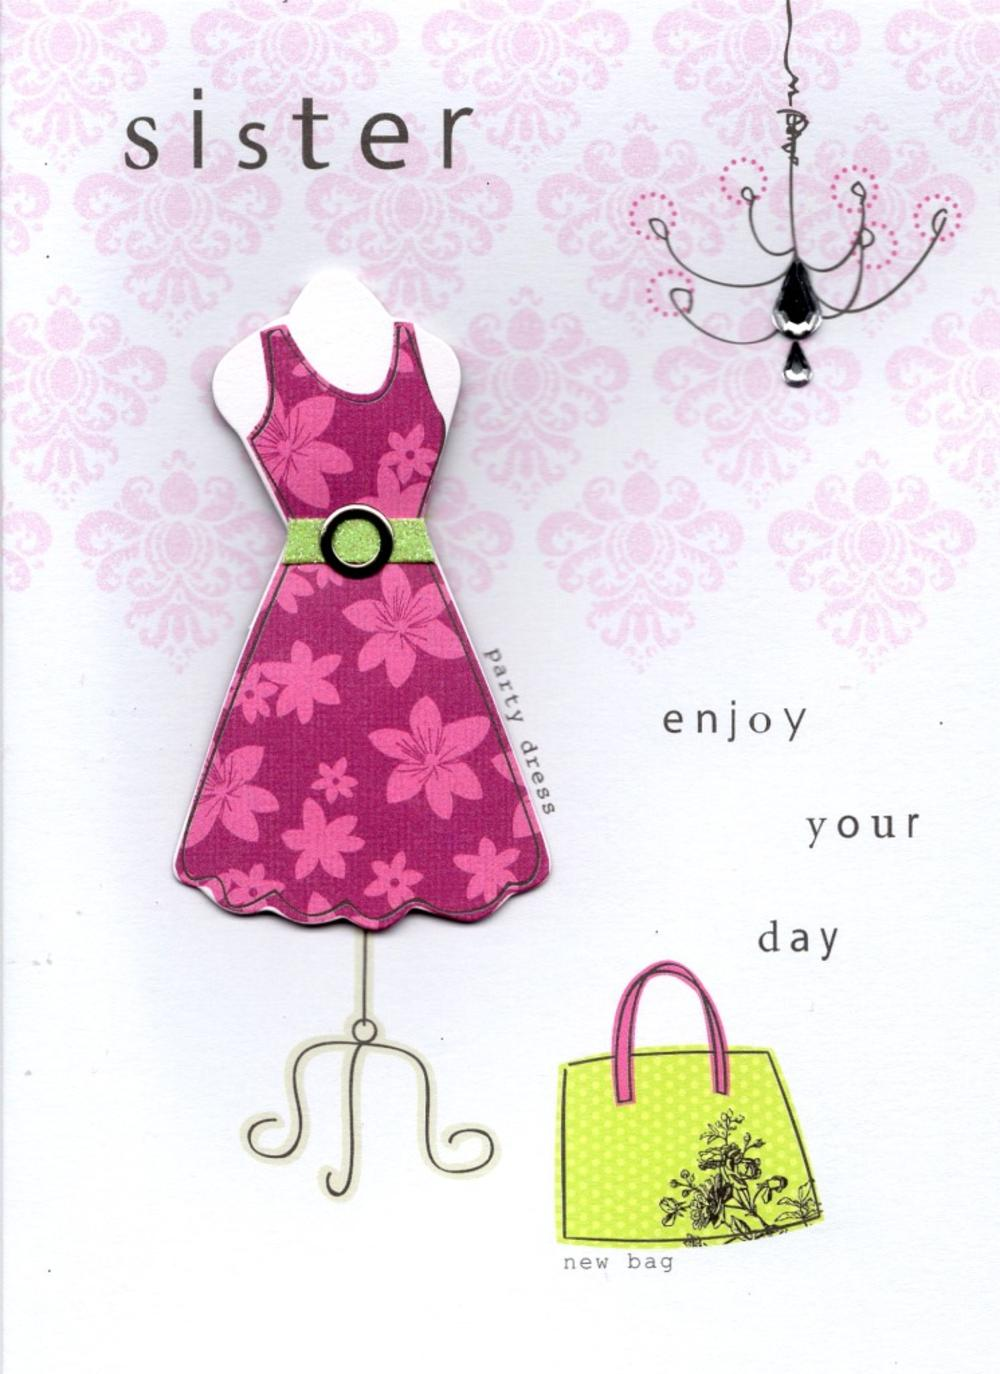 Sister Pretty Dress Handmade Happy Birthday Card | Cards | Love Kates